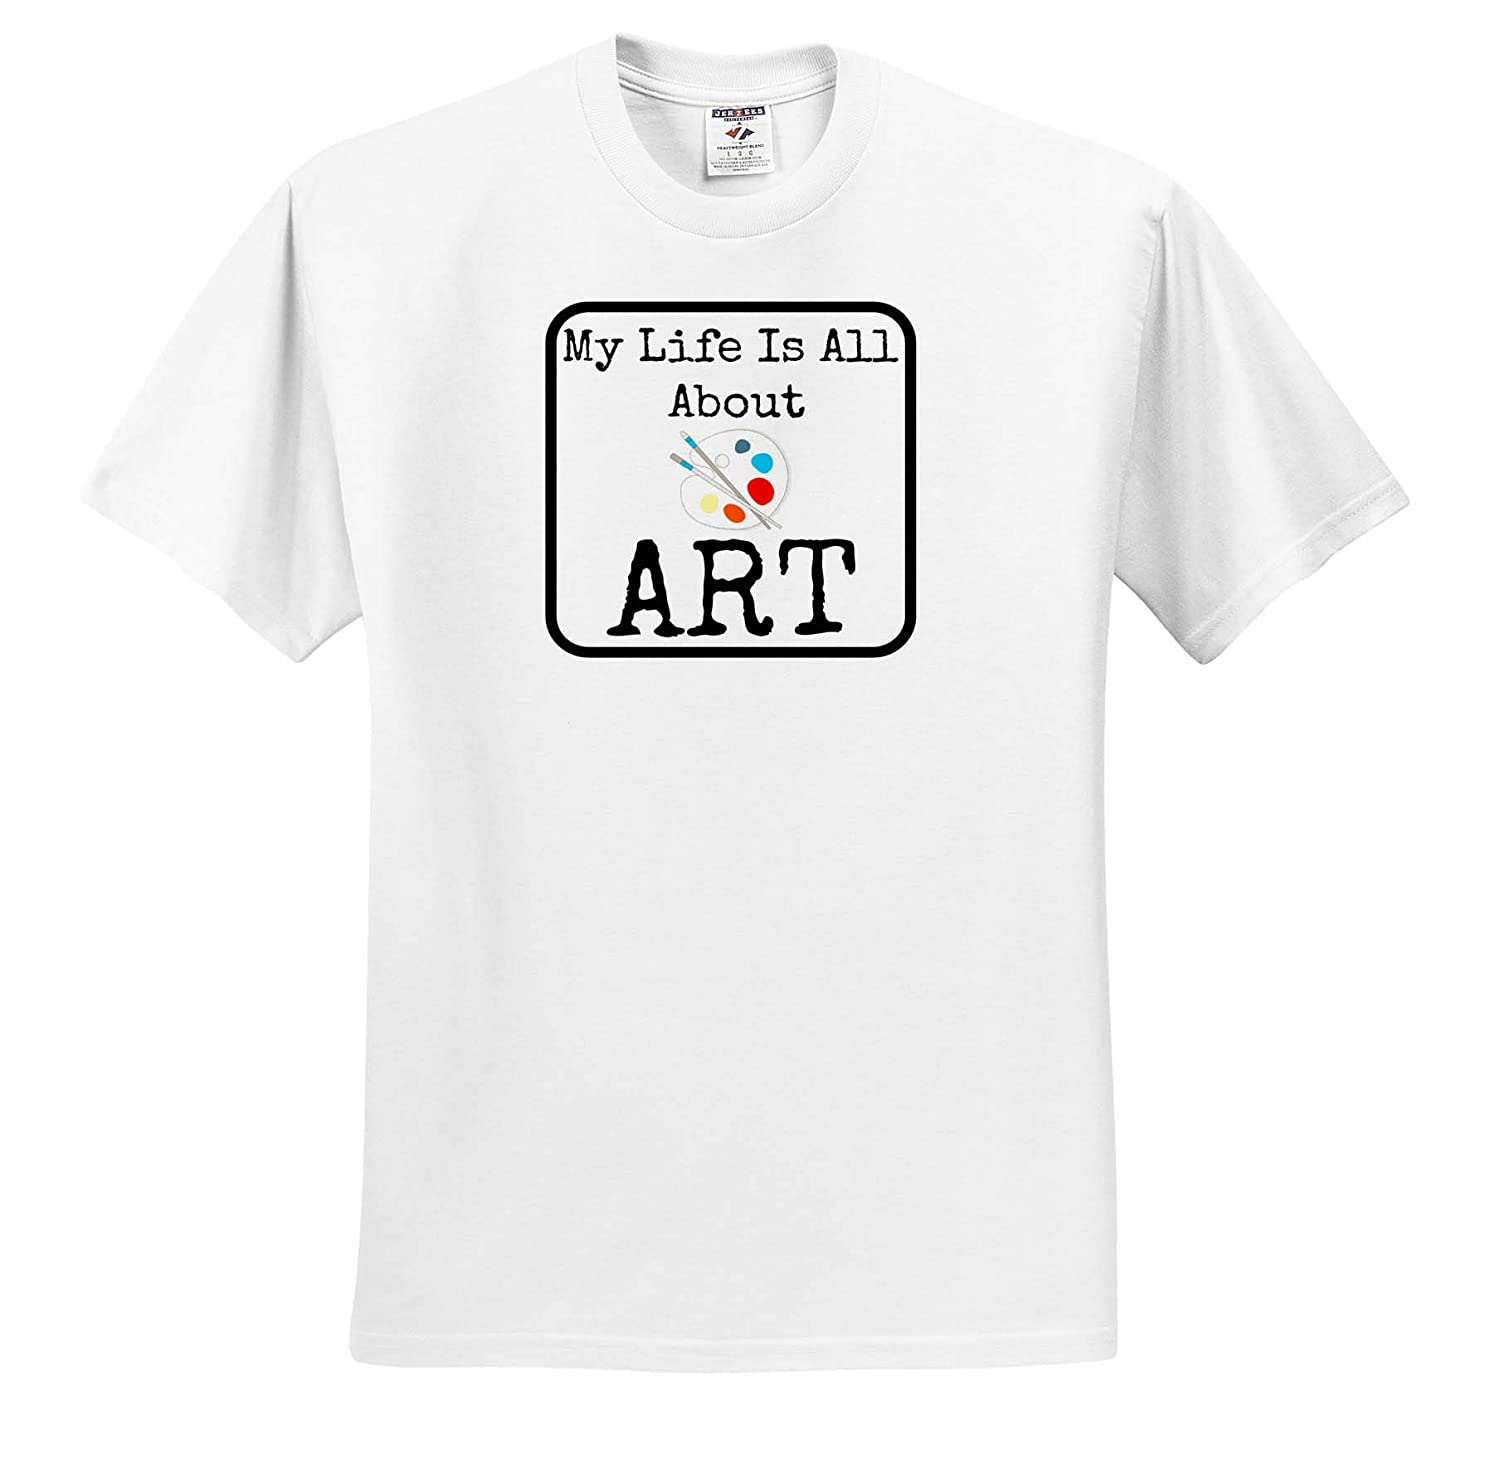 3dRose Carrie Quote Image Image of My Life is All About Art ts/_320203 Adult T-Shirt XL